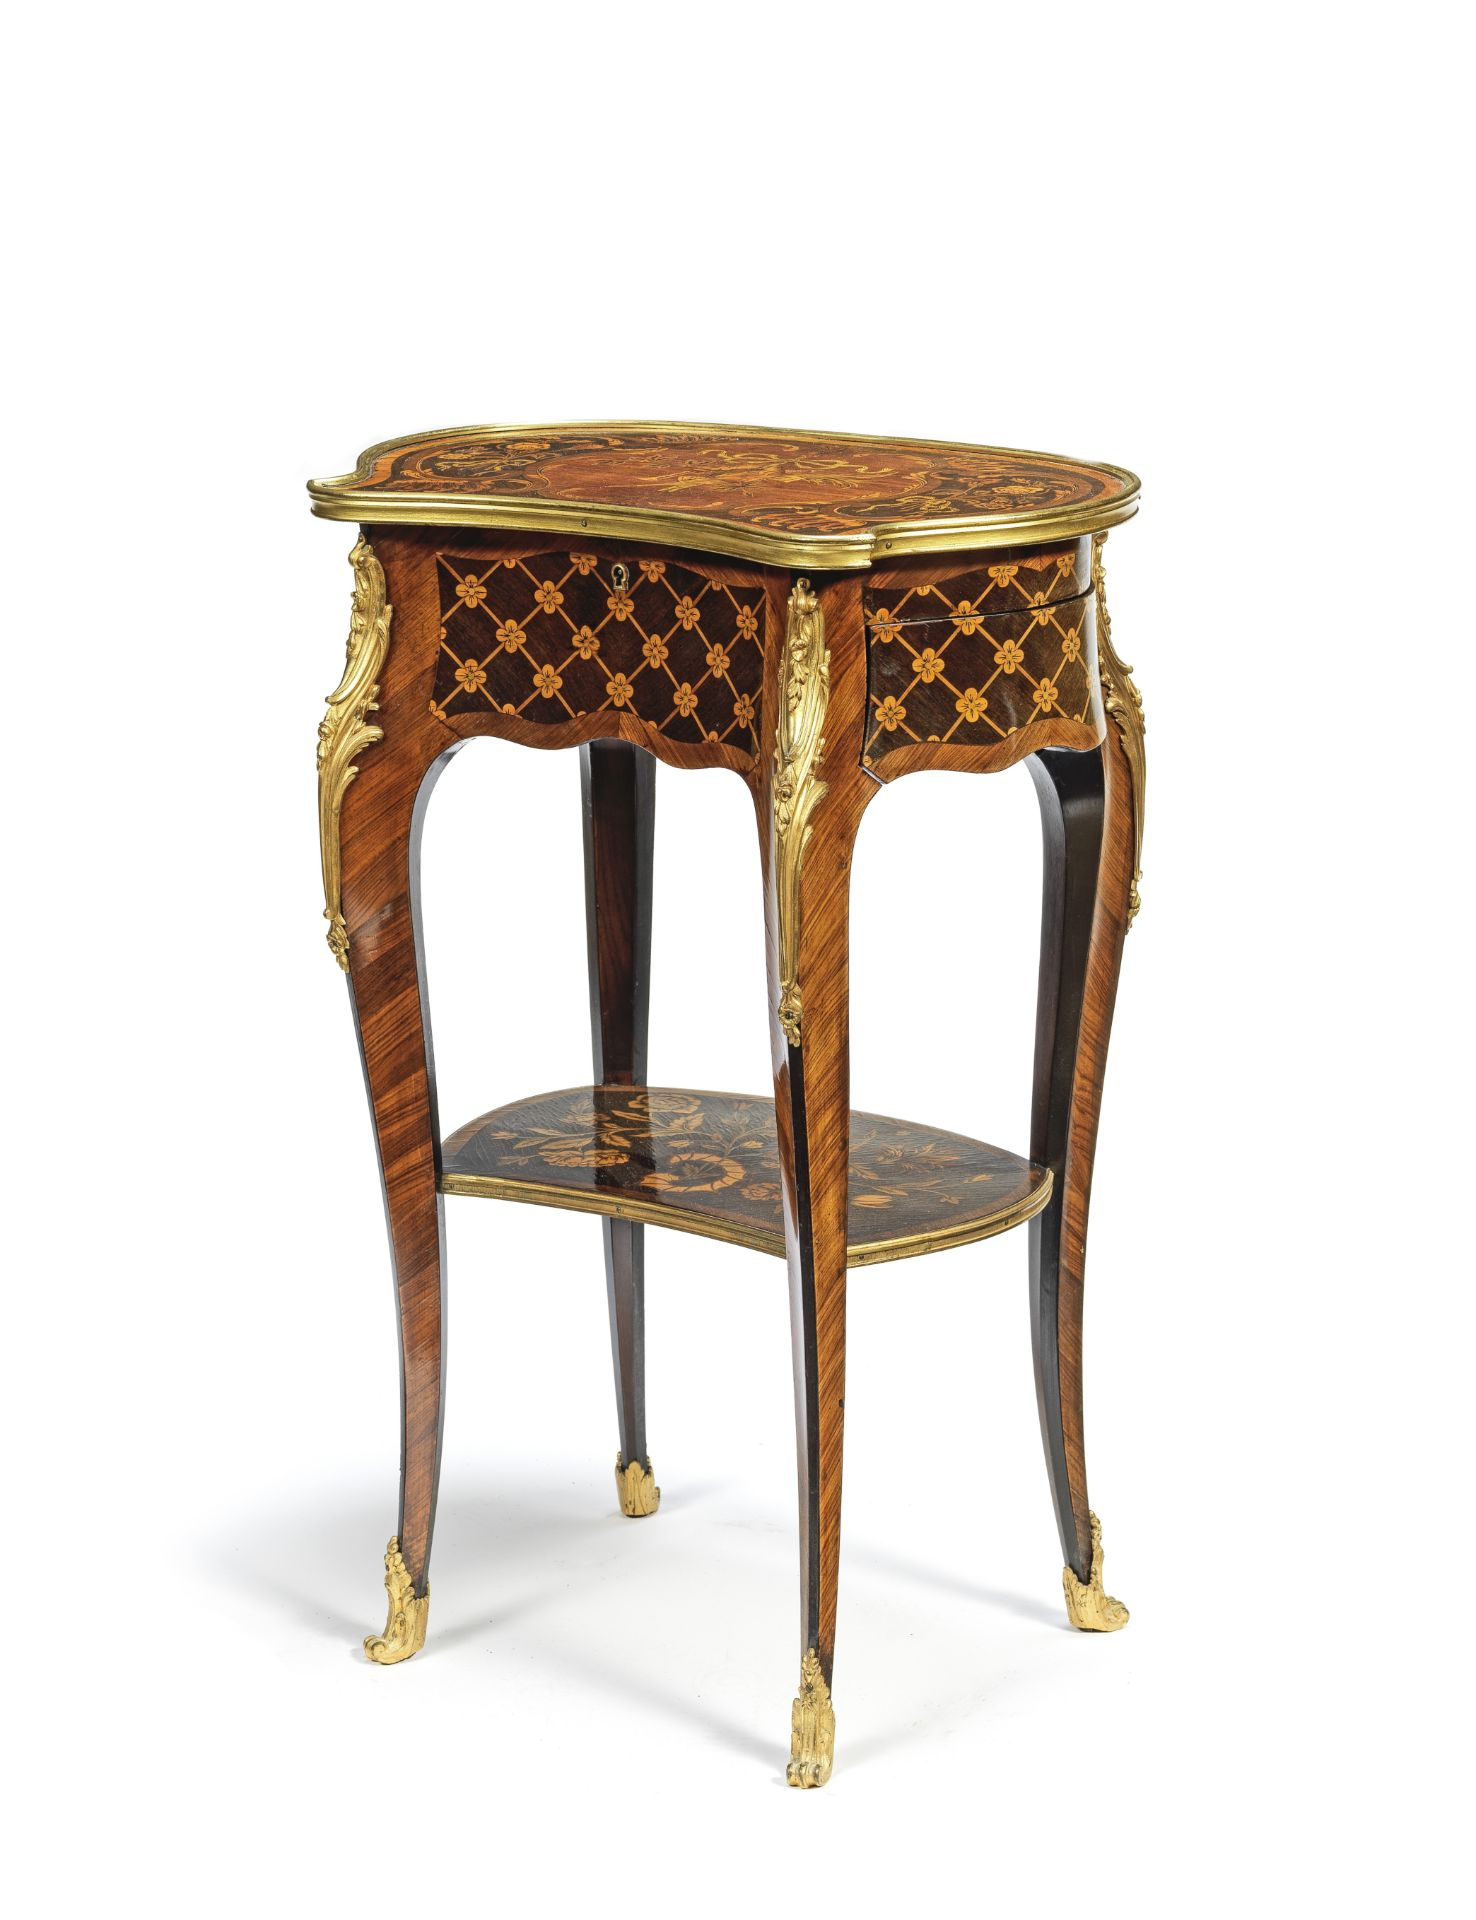 Los 68 - A Napoleon III gilt bronze mounted kingwood, amaranth, stained sycamore and marquetry table a ouv...